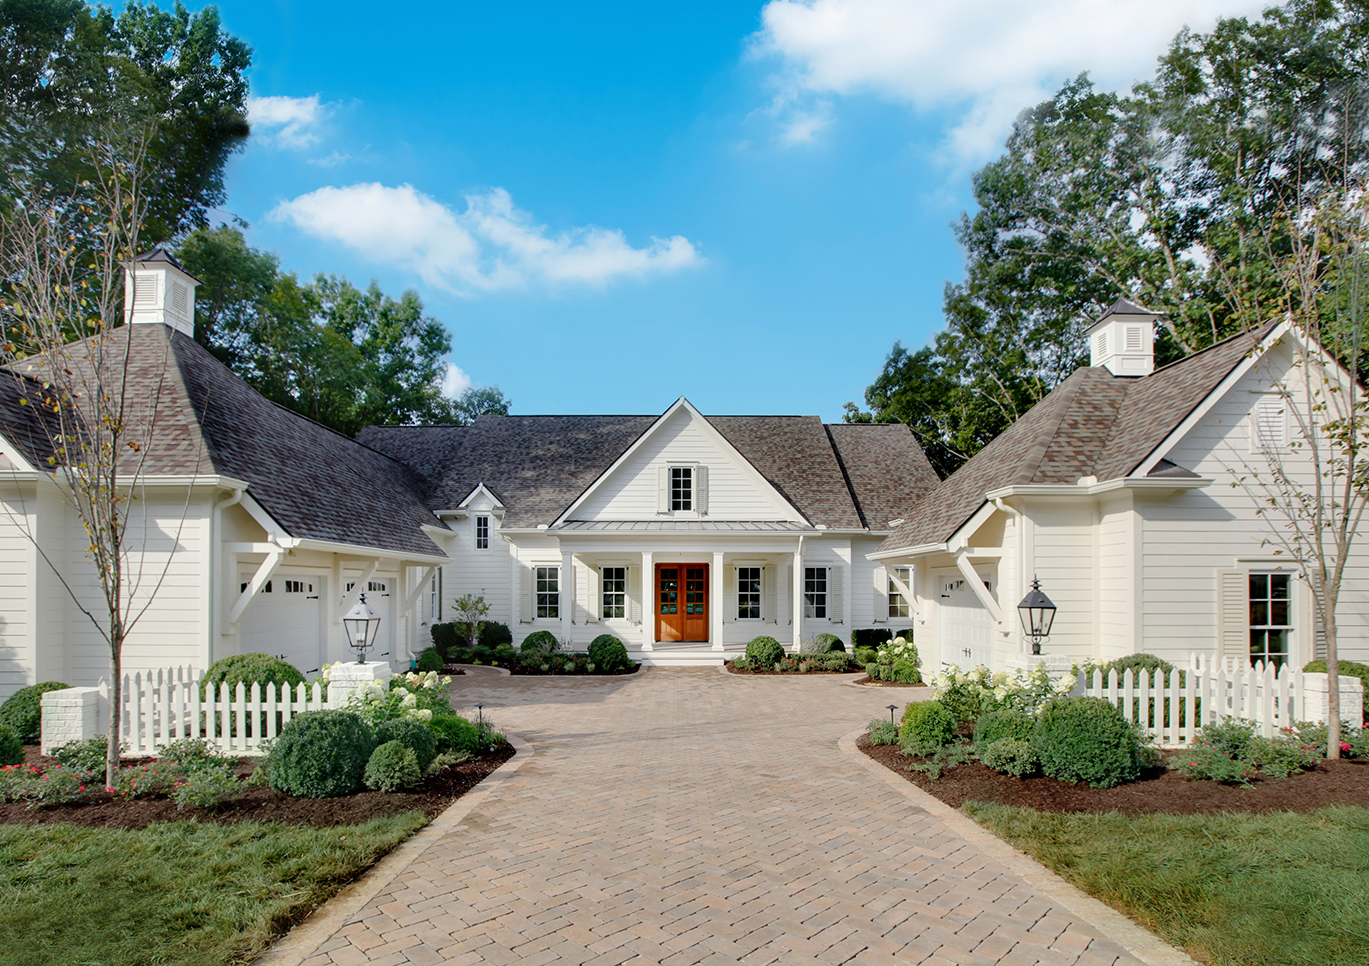 Bon Southern Living Custom Builder Program Member Hosts Open House To Benefit  Charity | Business Wire